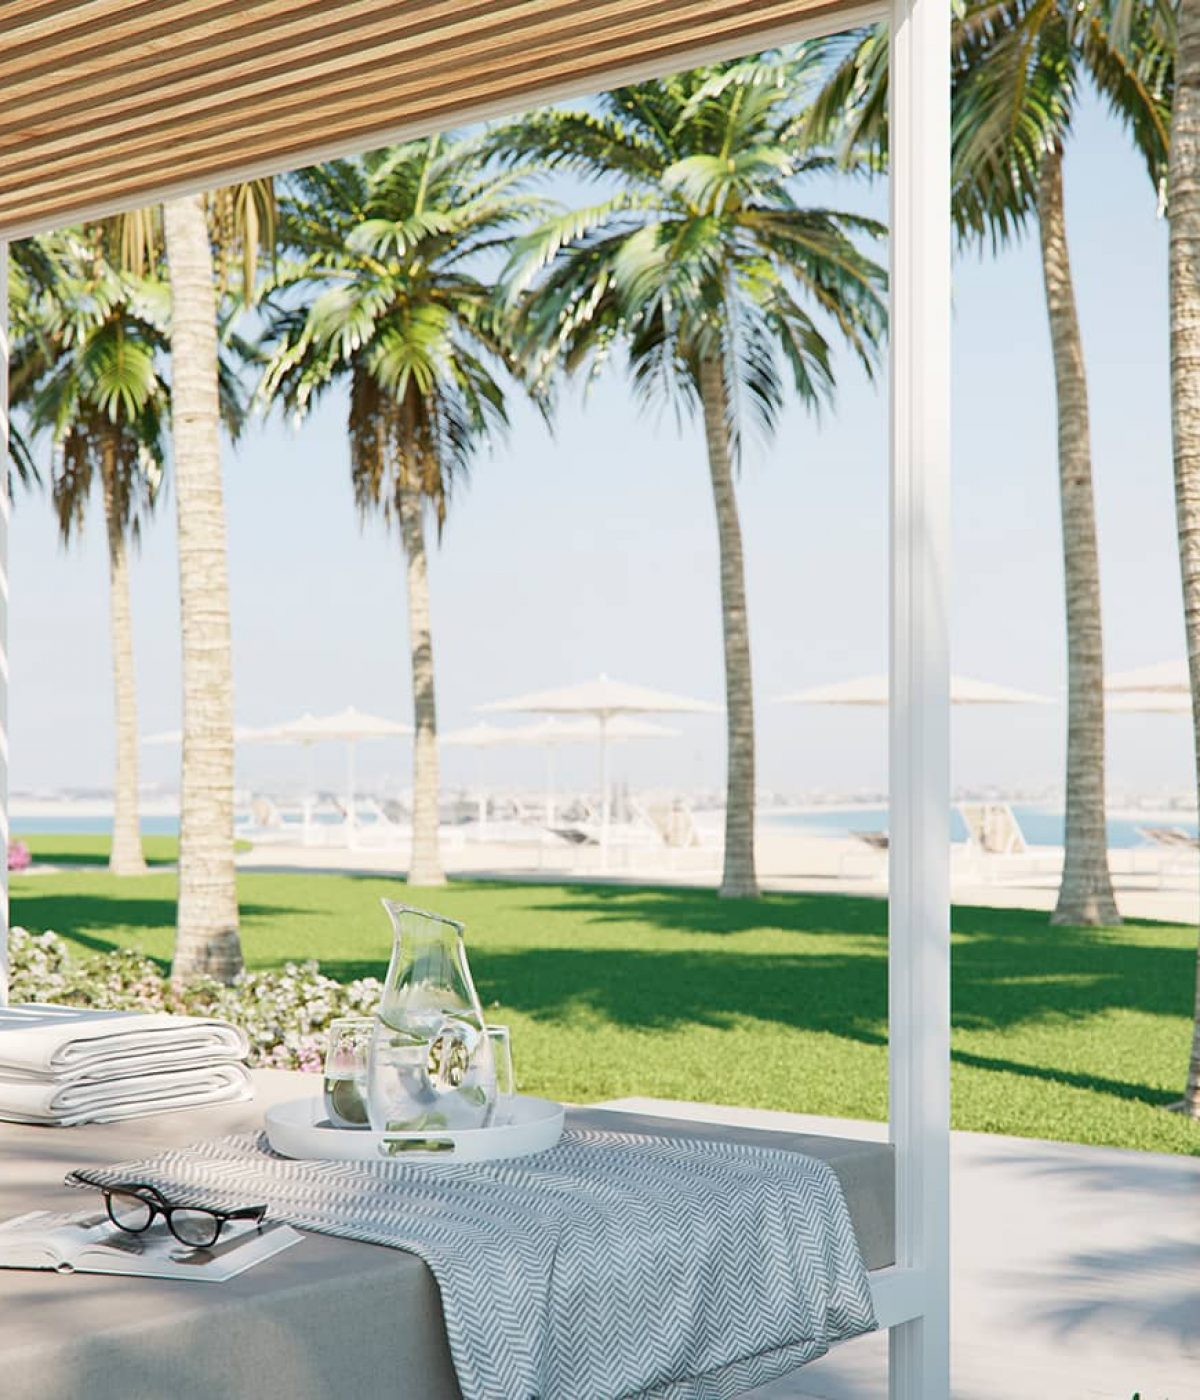 A luxury garden residence on the Palm Jumeirah, Dubai